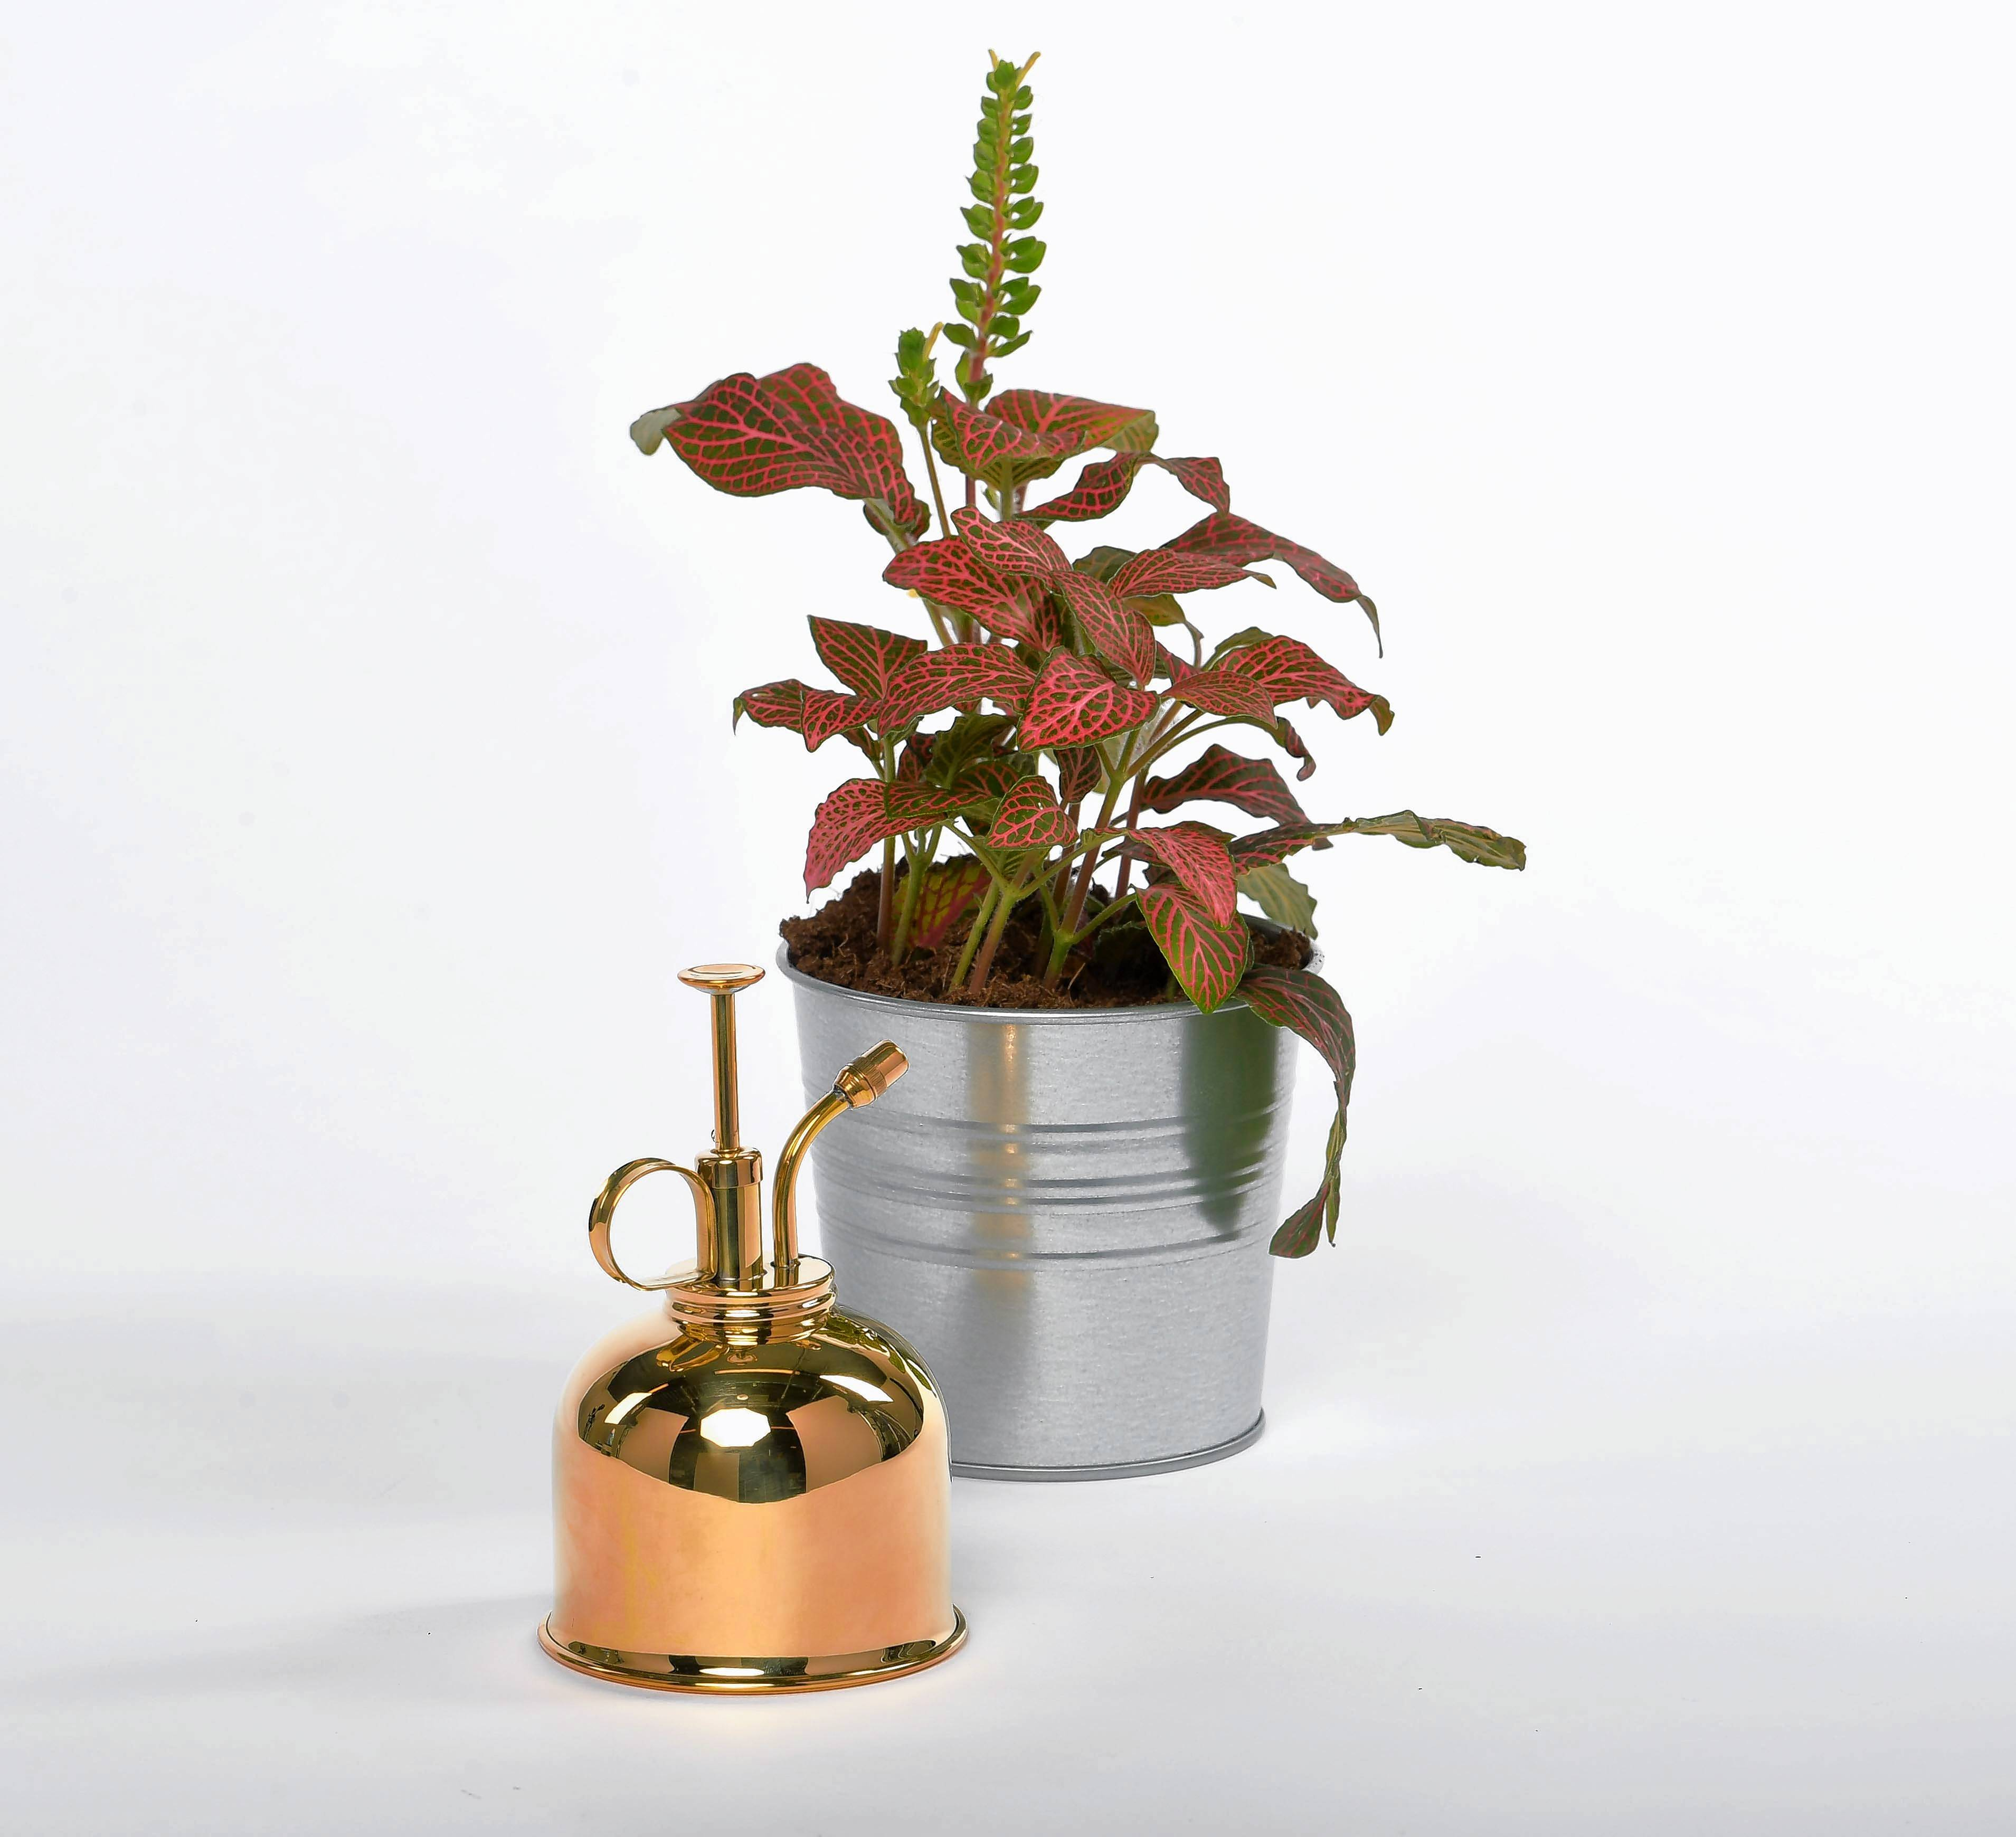 A 10-ounce plant mister in brass from Haws, $21.95, hawswateringcans.com. MUST CREDIT: Photo for The Washington Post by Katherine Frey